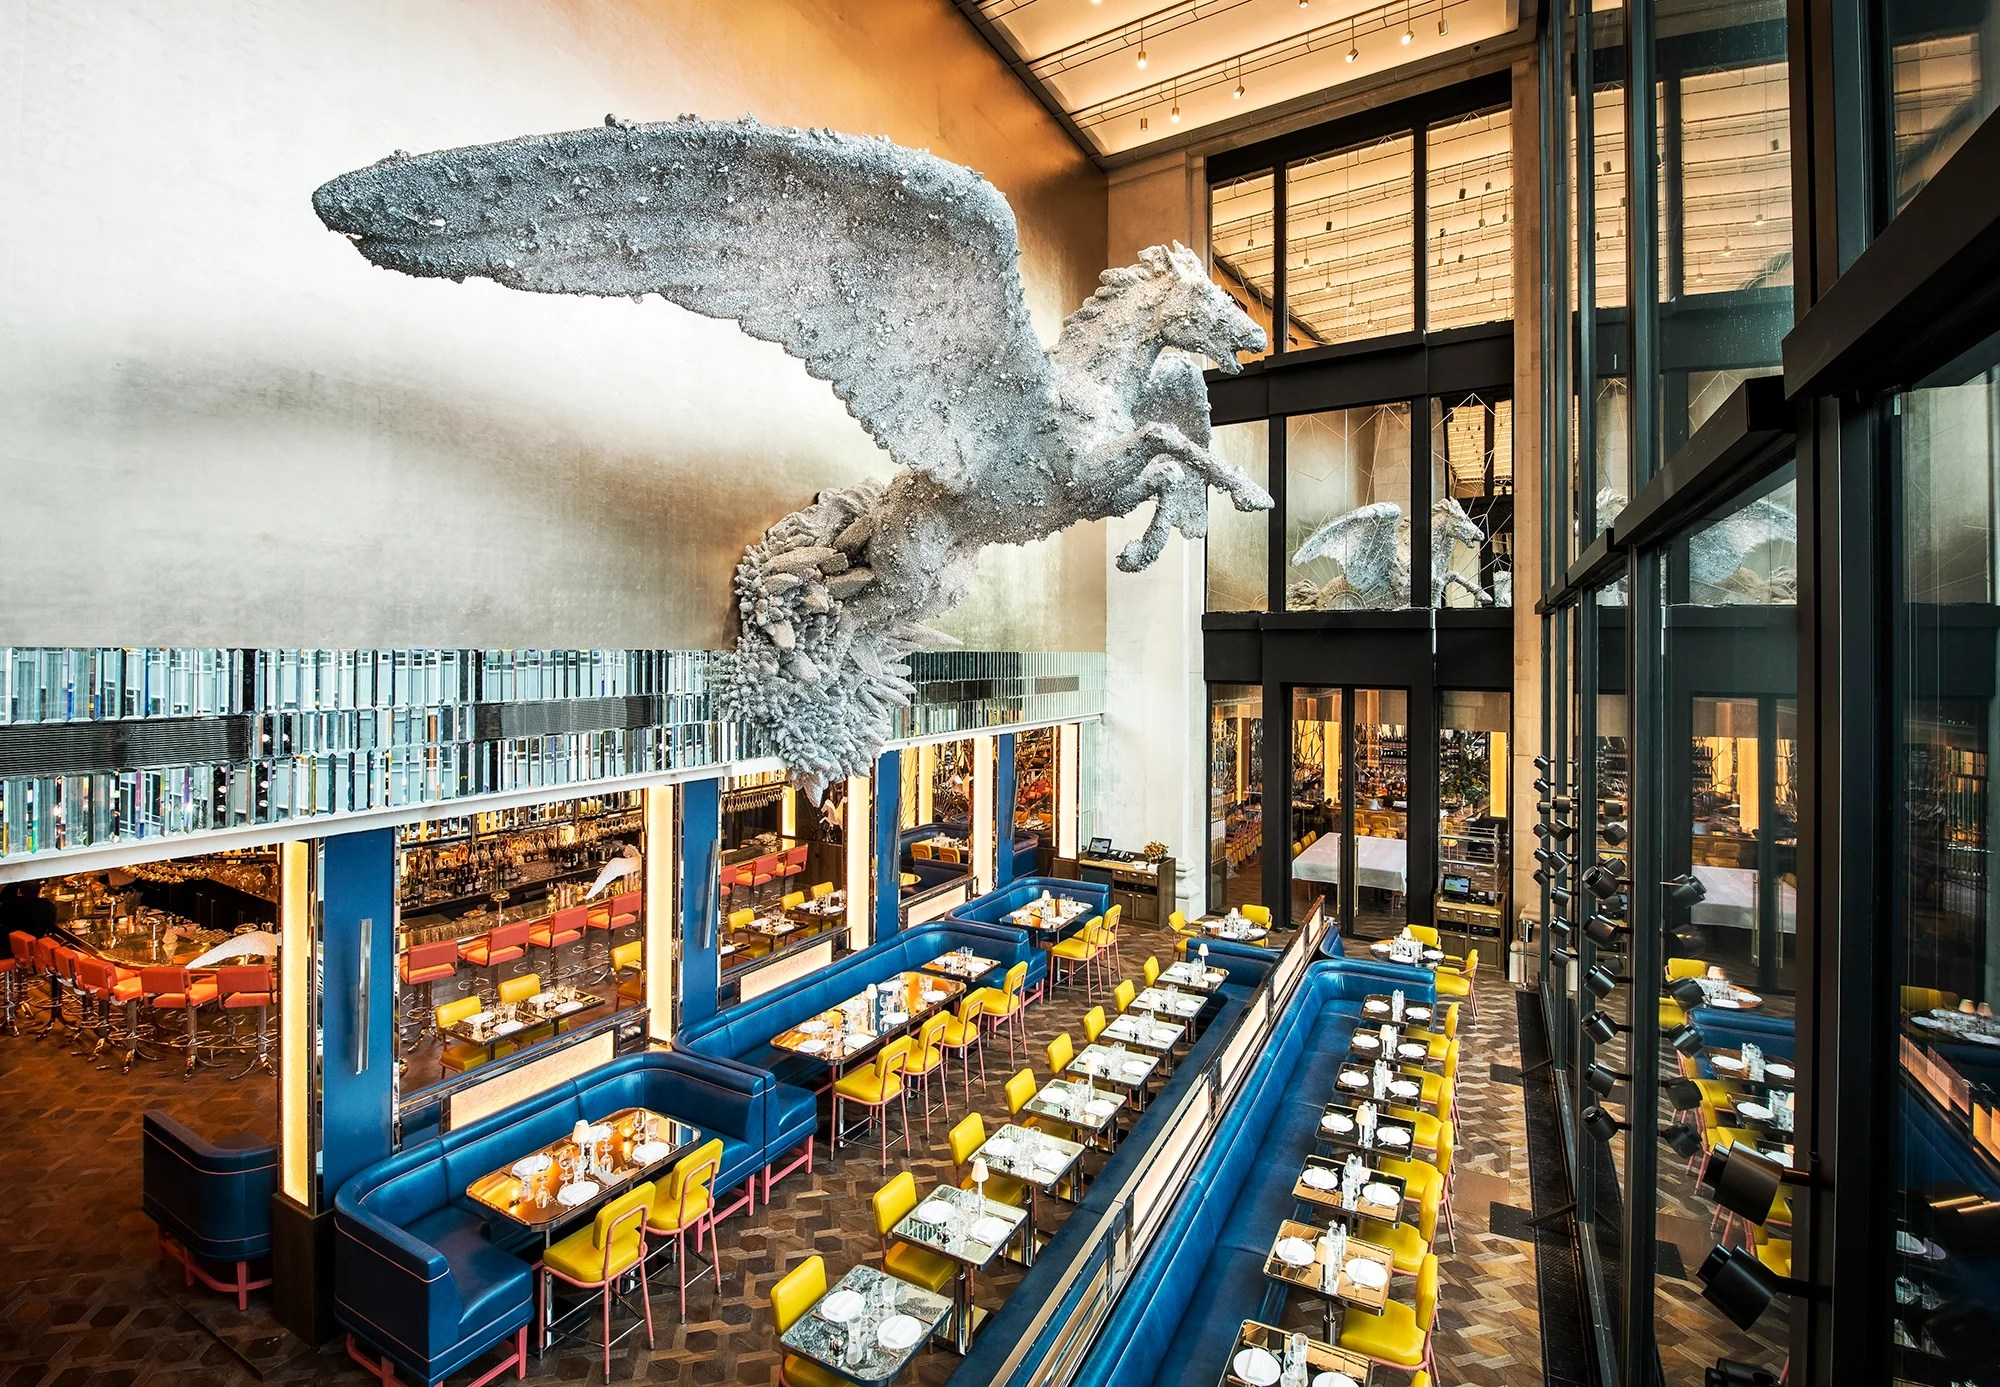 It was so close but we have been saying that a little bit too often. Brasserie of Light review: Everything you want, and a huge